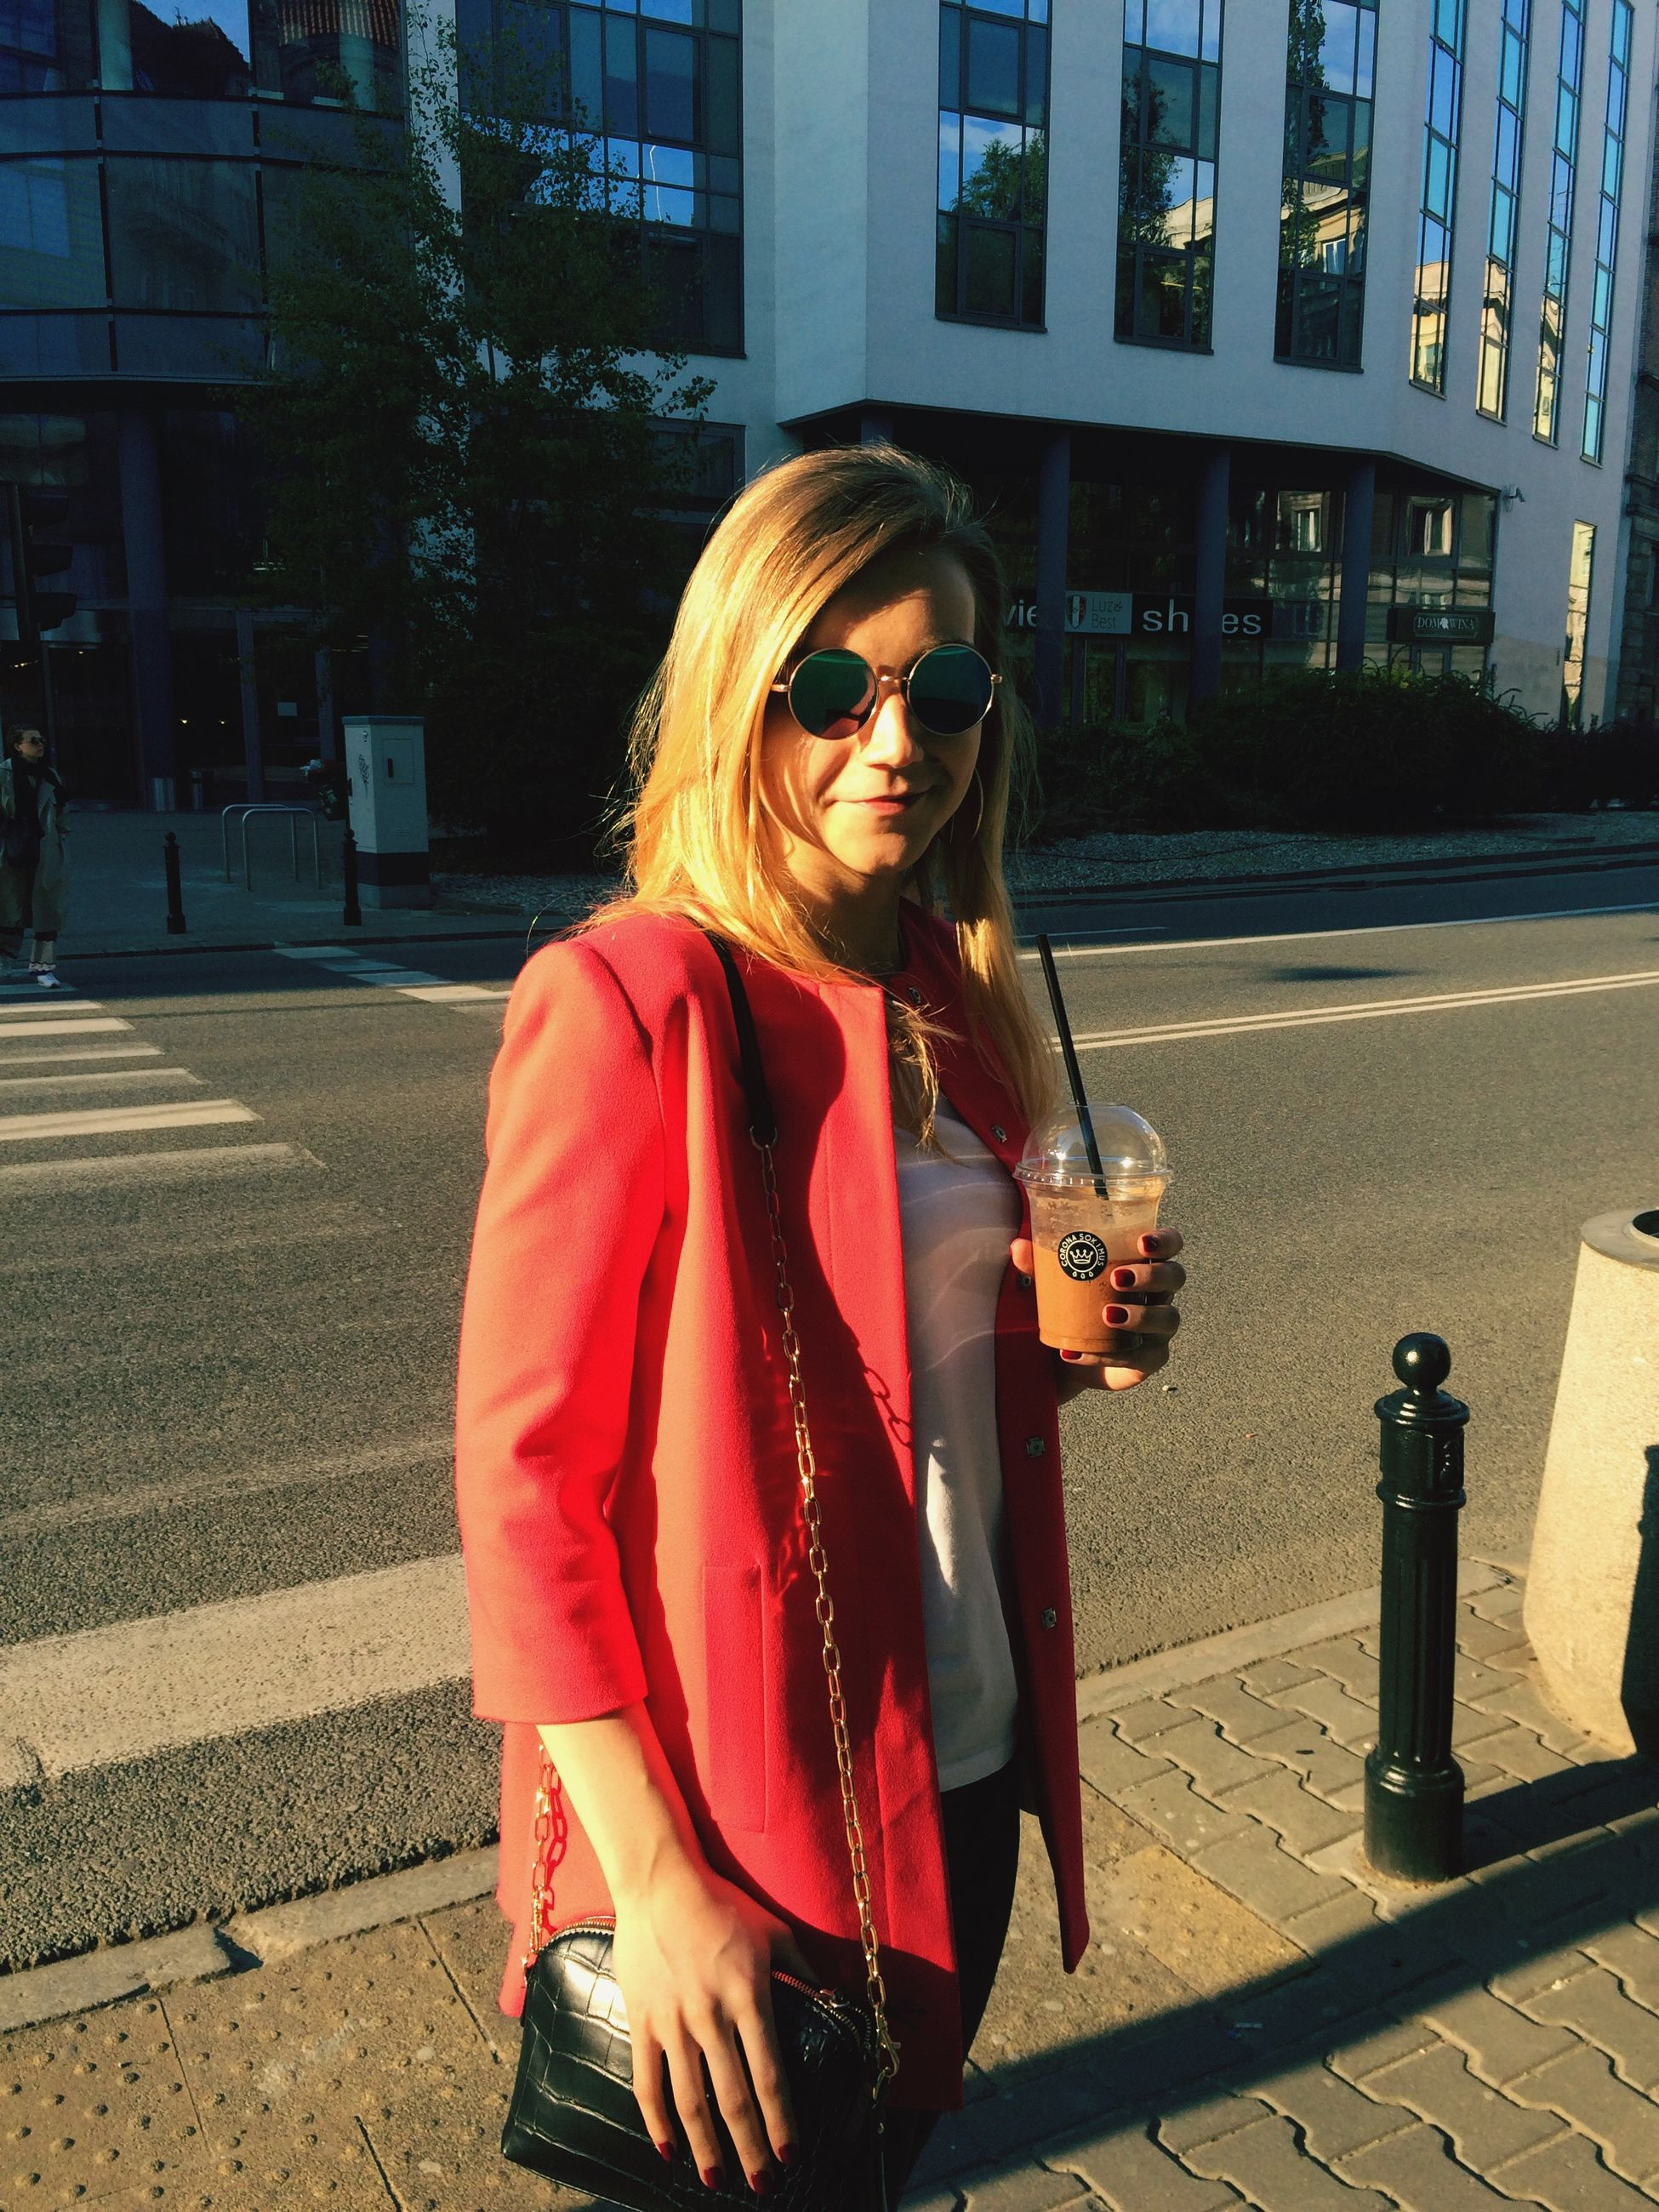 sunglasses, street, building exterior, architecture, real people, outdoors, road, one person, built structure, lifestyles, city, young adult, day, blond hair